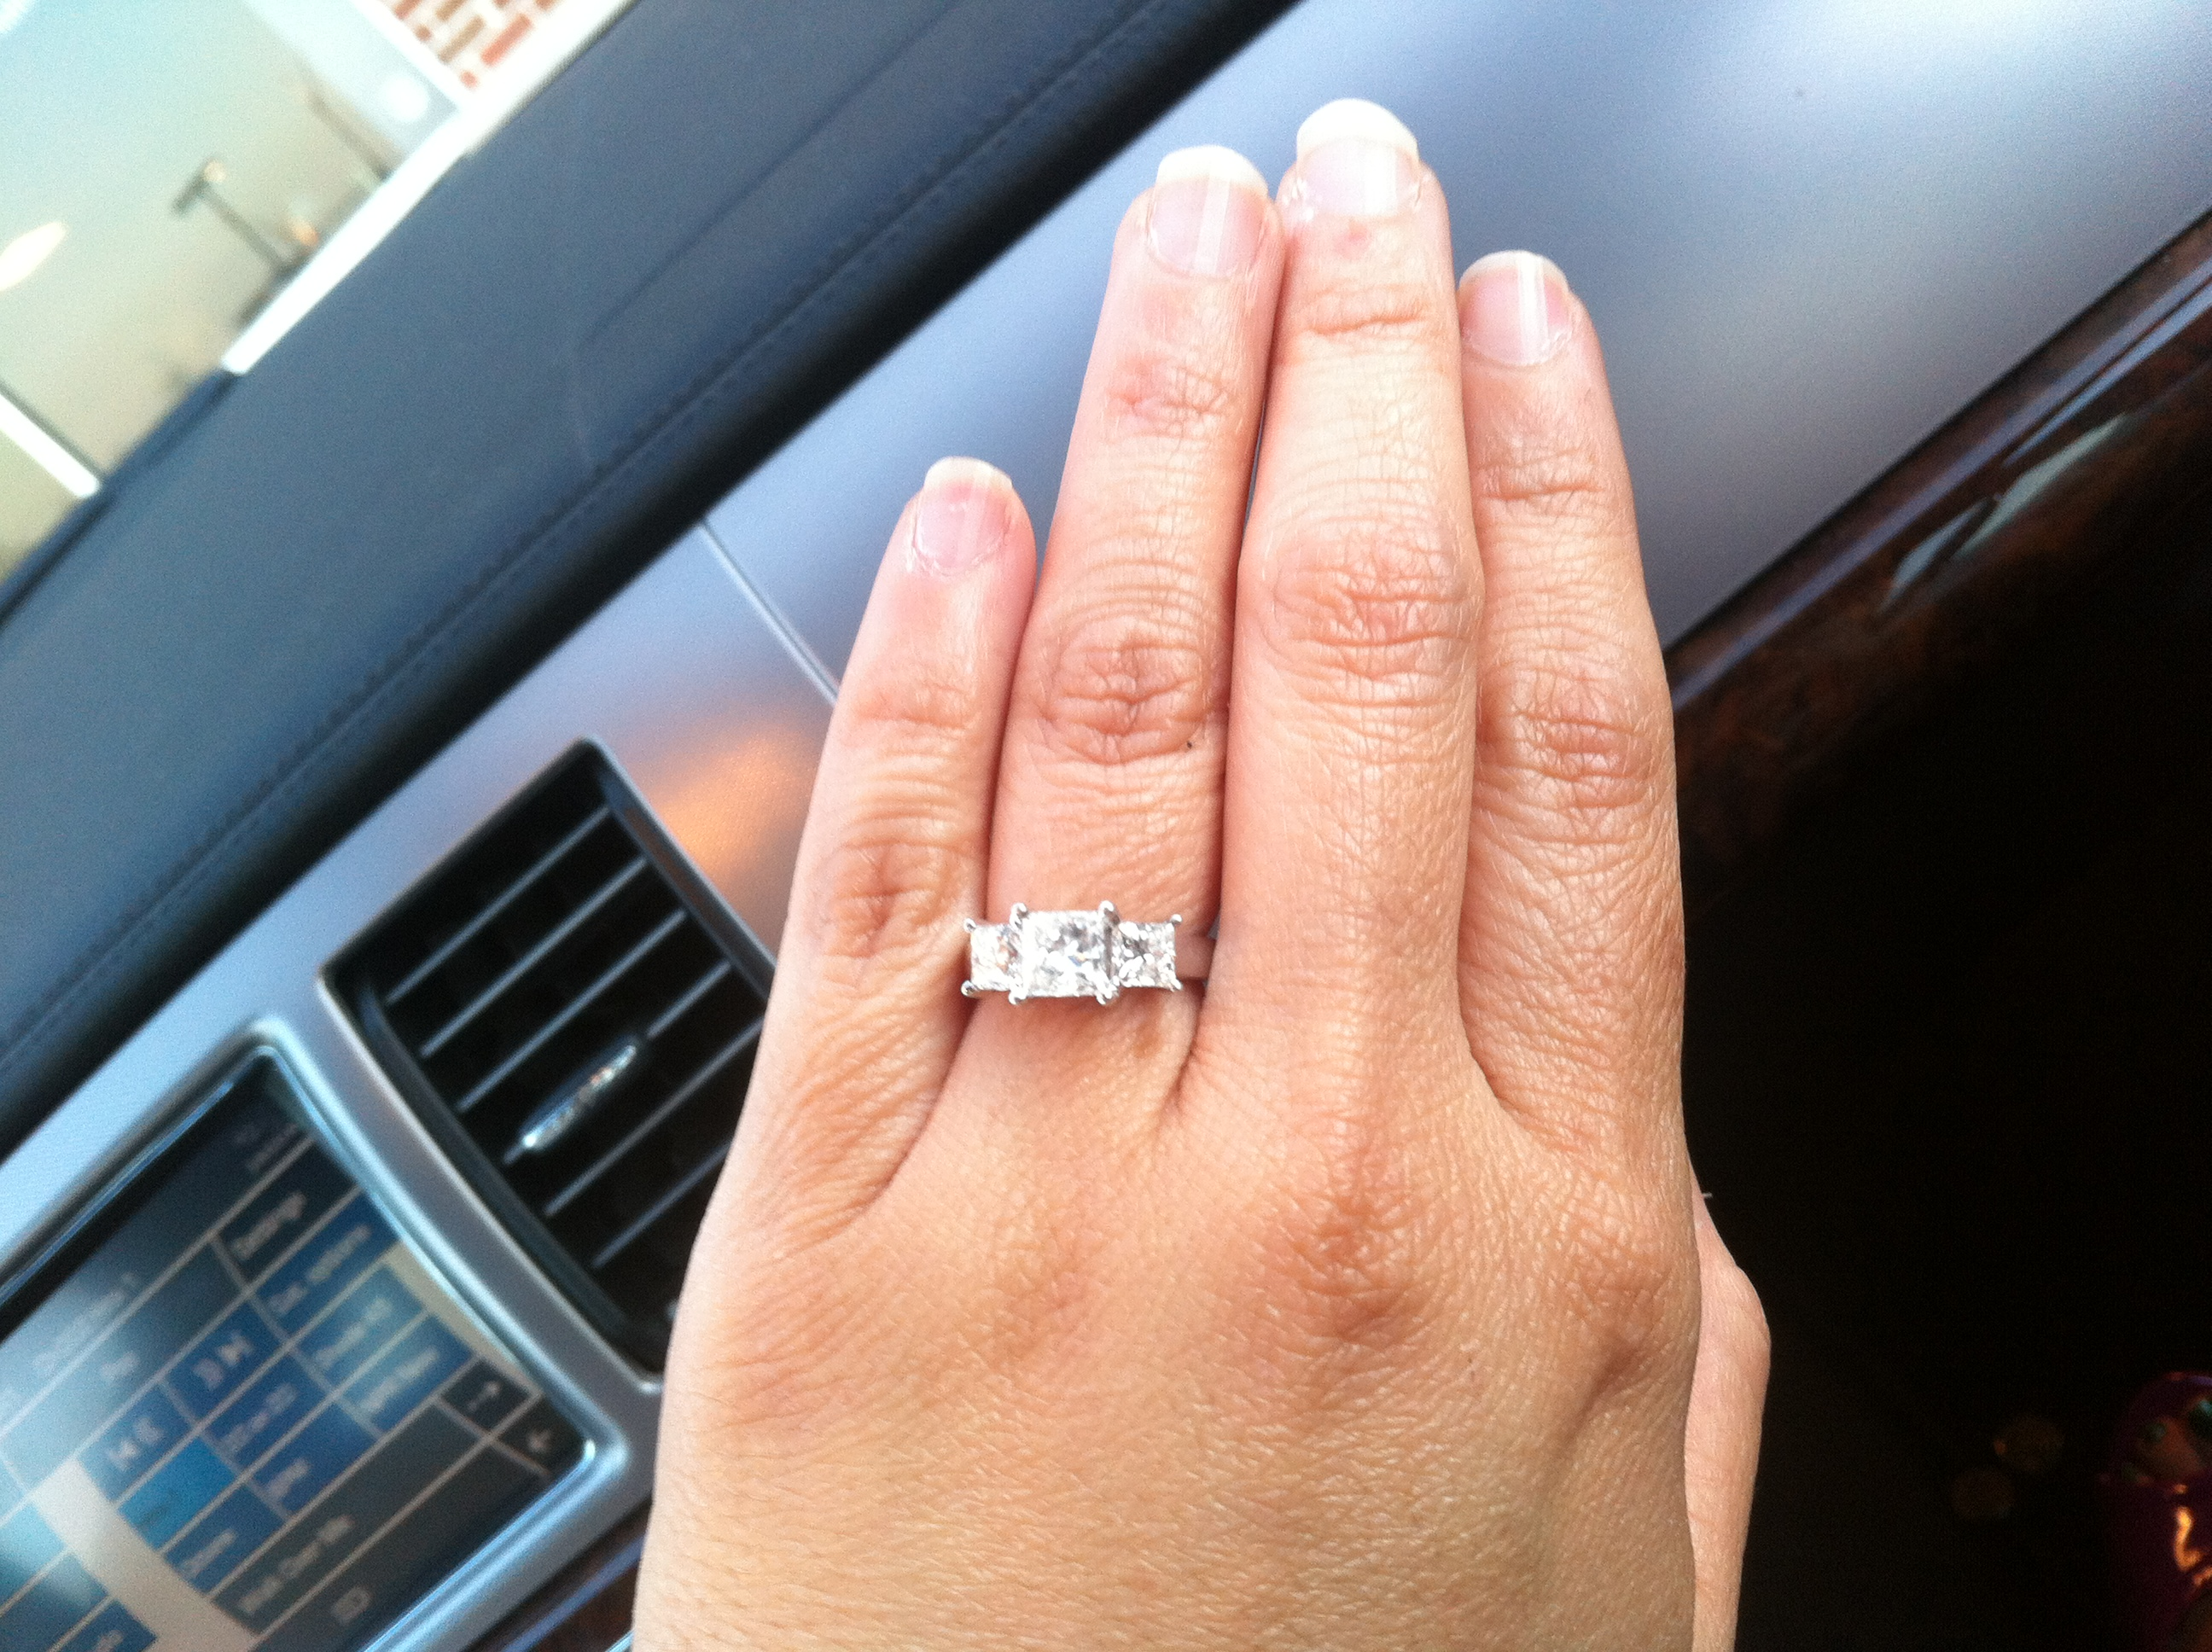 Engagement rings and wedding bands what is a reasonable price